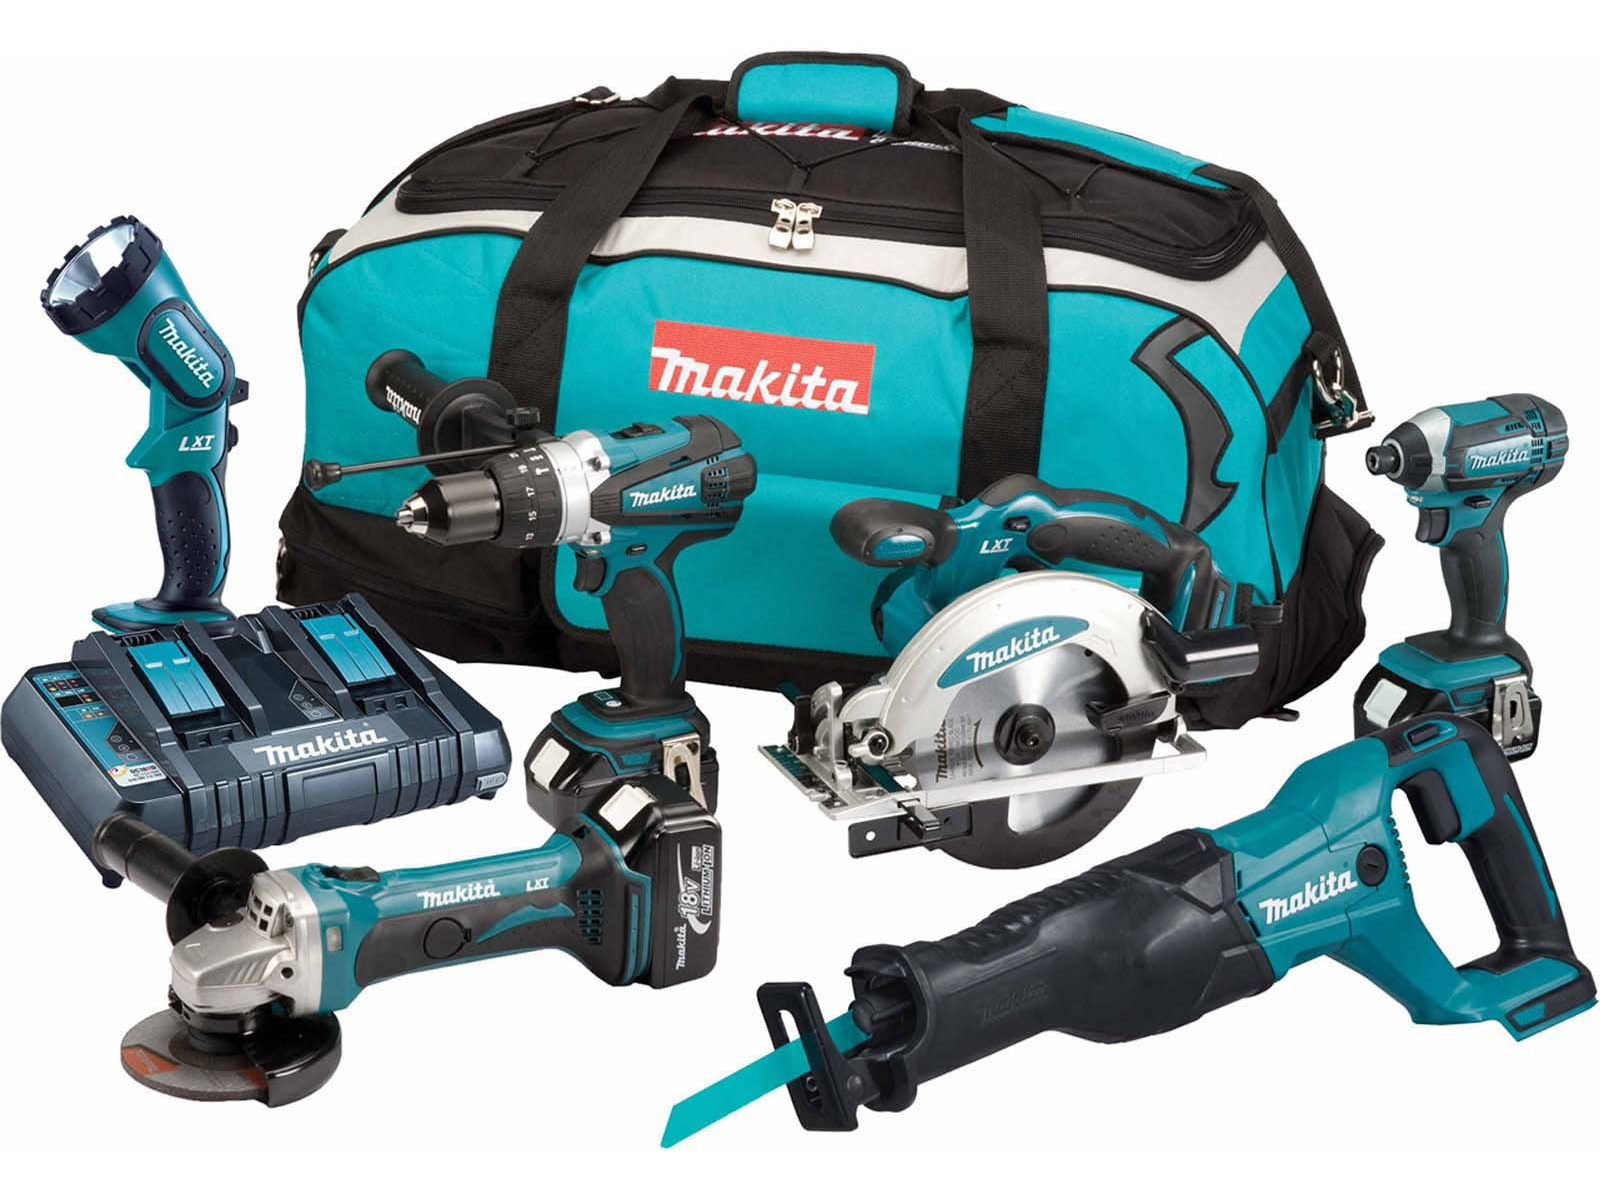 Makita 18V 6pc LXT Kit - Combi / Impact & More - DLX6072PT - 5.0ah Pack